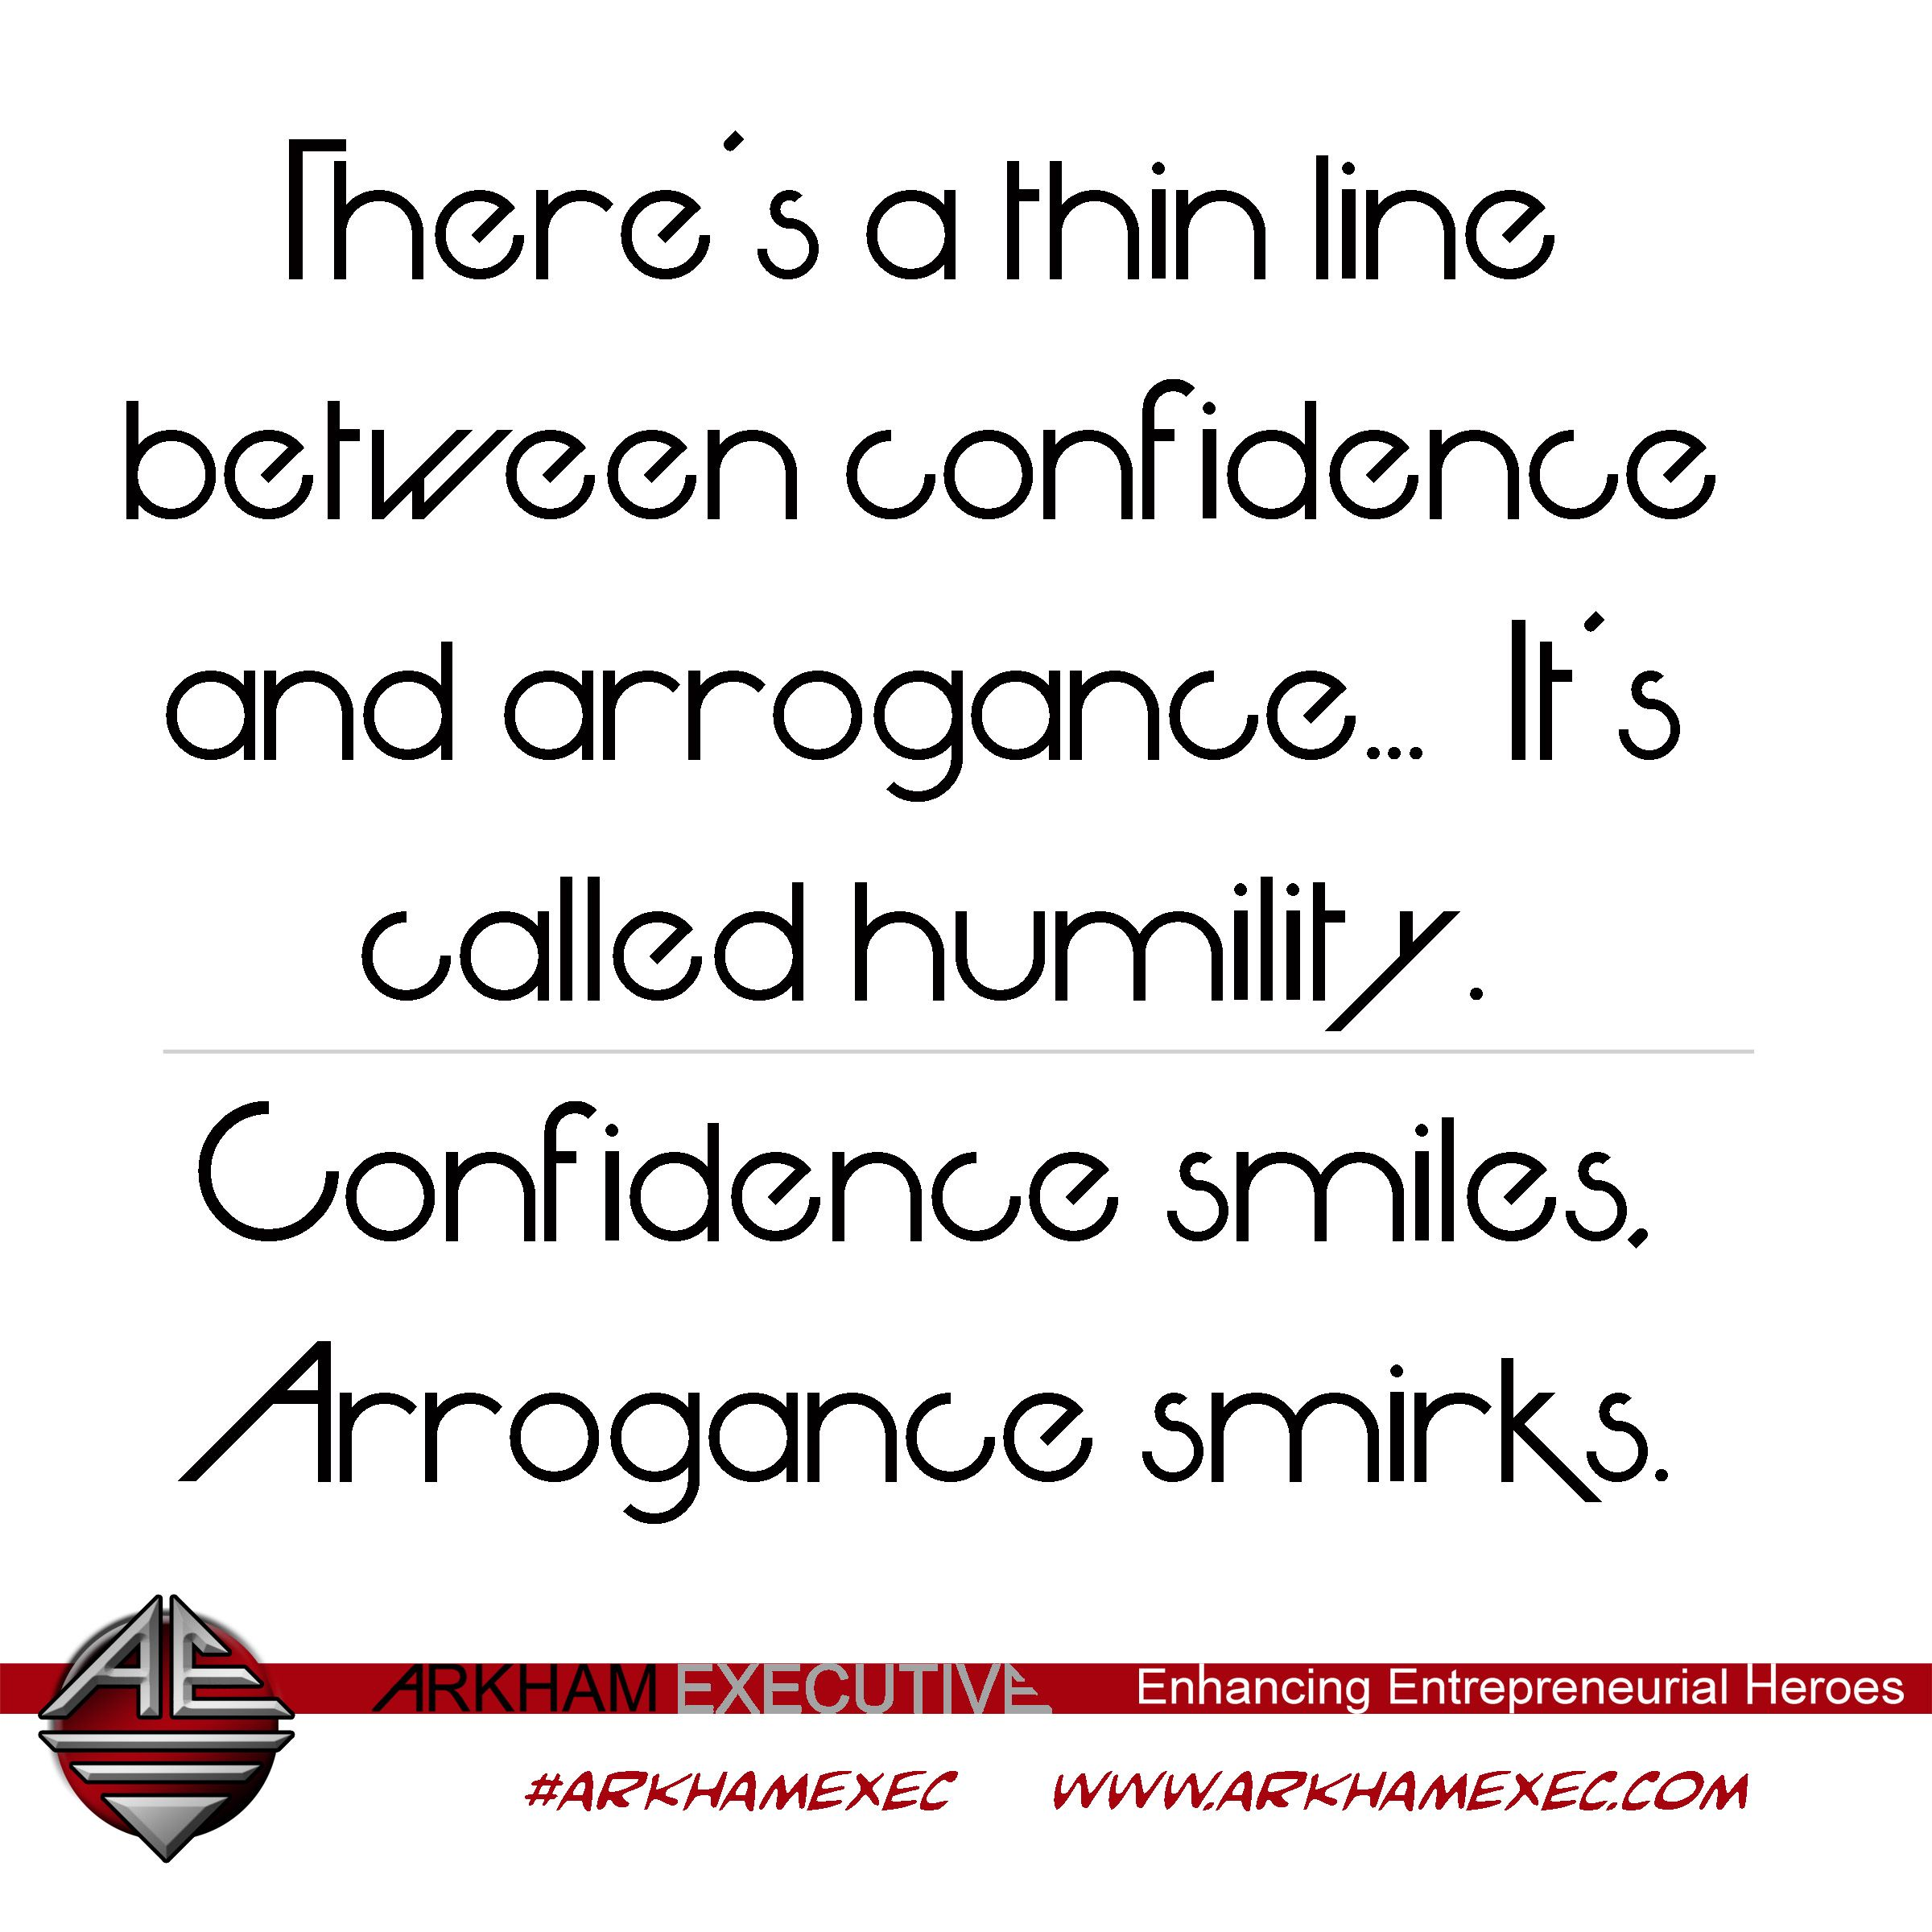 Thin line between confidence and arrogance